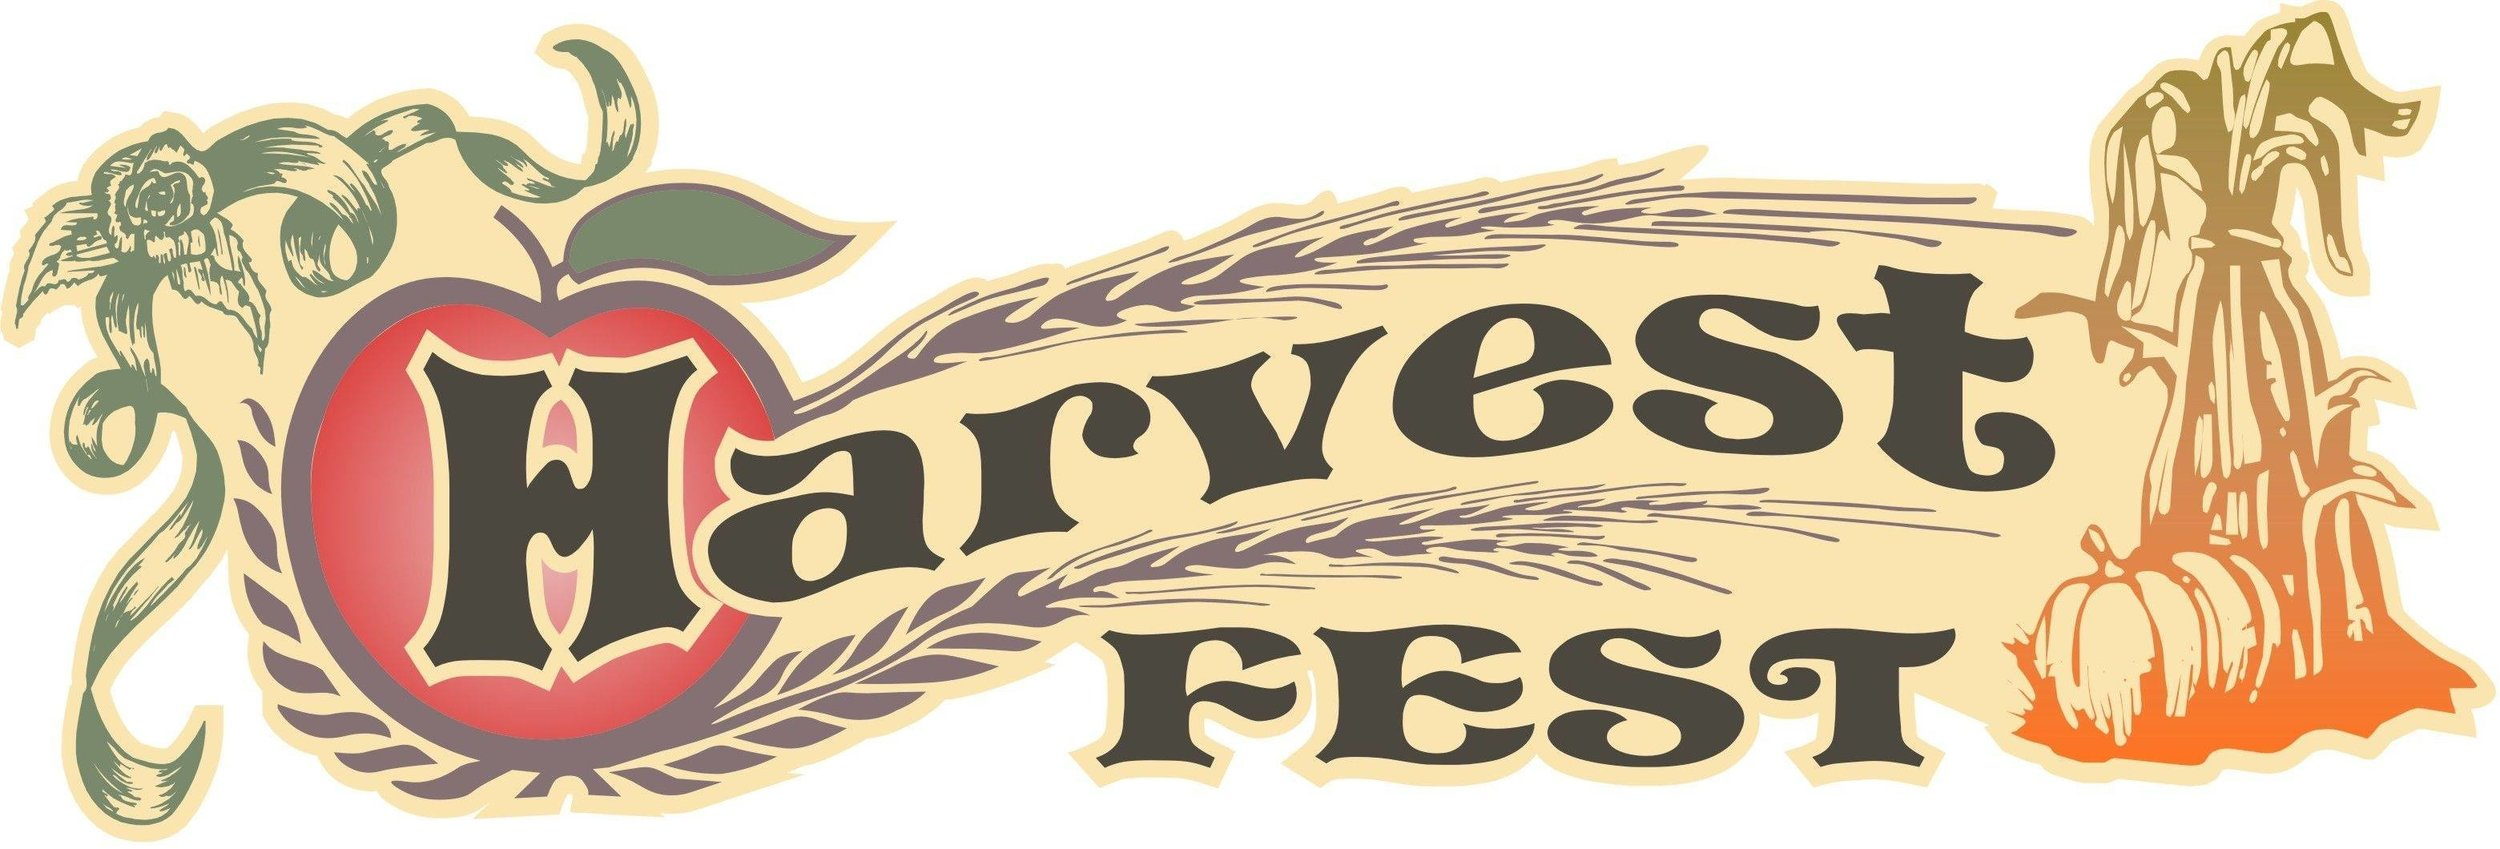 Come join the fun on Main Street!  Harvest Fest Saturday, October 21st at 10 a.m. to 5 p.m.  Live entertainment, arts/crafts vendors, food vendors, inflatables, face painting, pumpkin paintings, costume contest and more!! Bring your family out on New Tazewell Main Street for a day of fall fun!